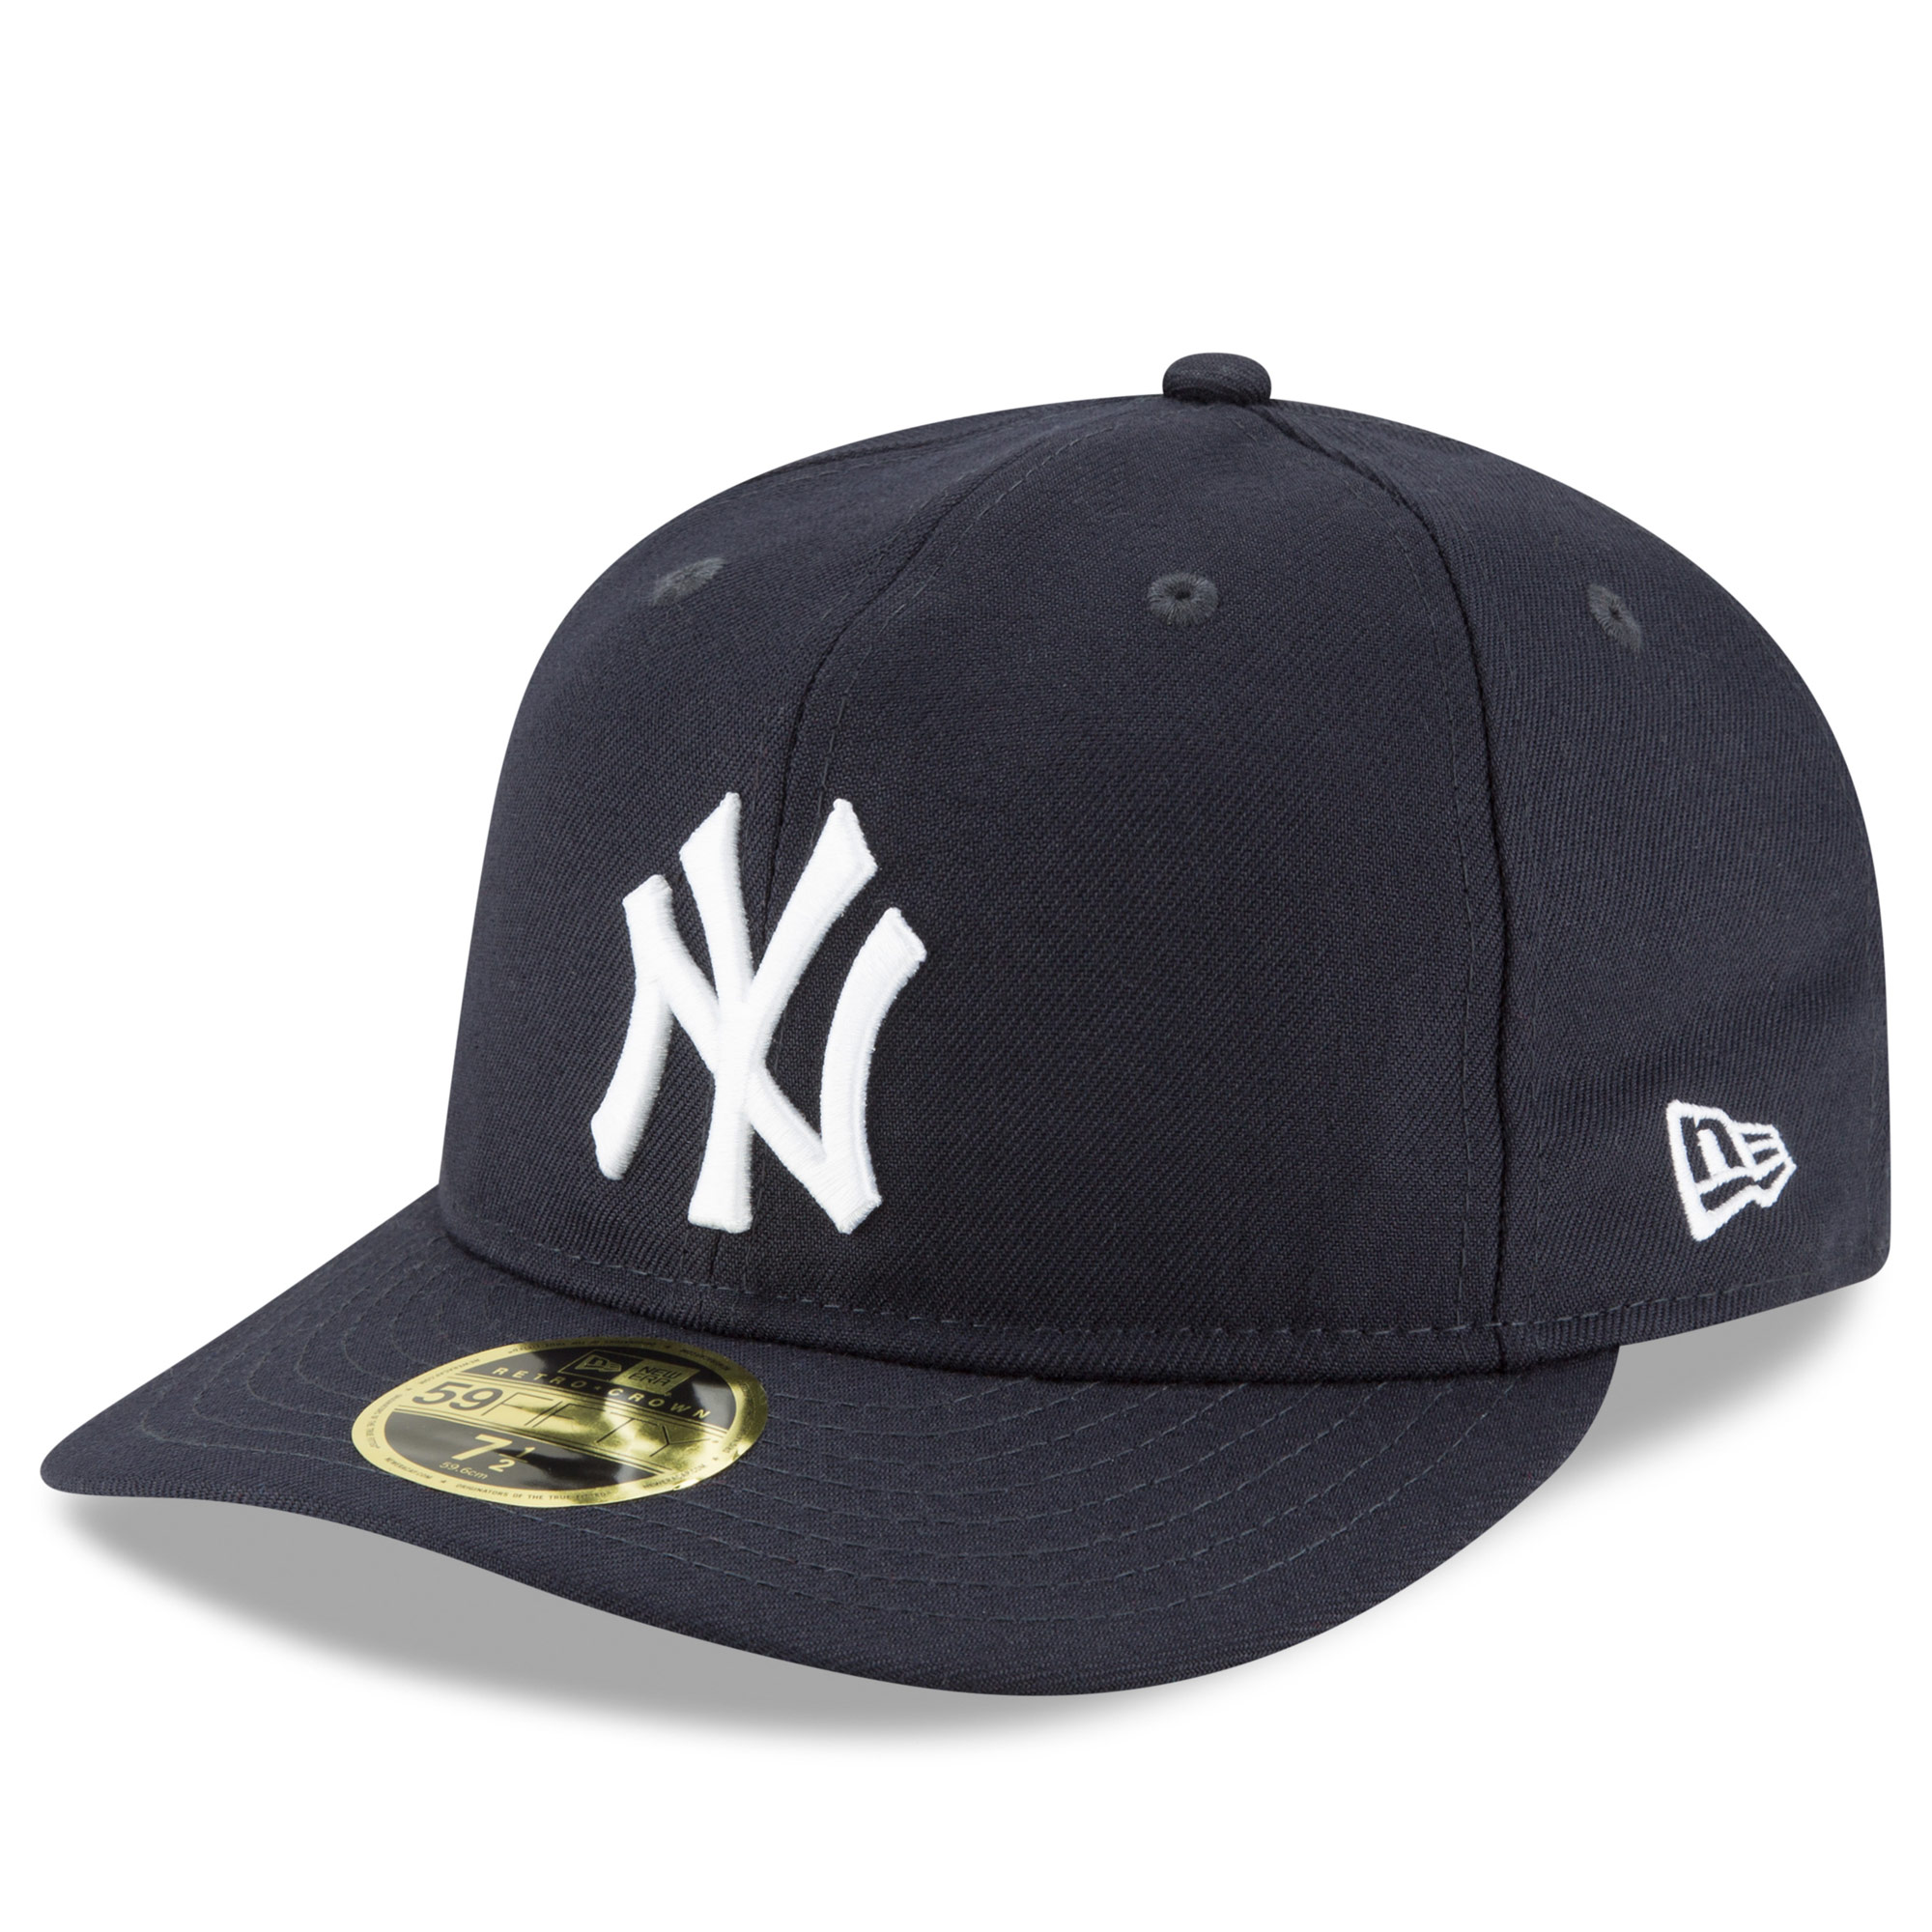 New York Yankees New Era Fan Retro Low Profile 59FIFTY Fitted Hat - Navy